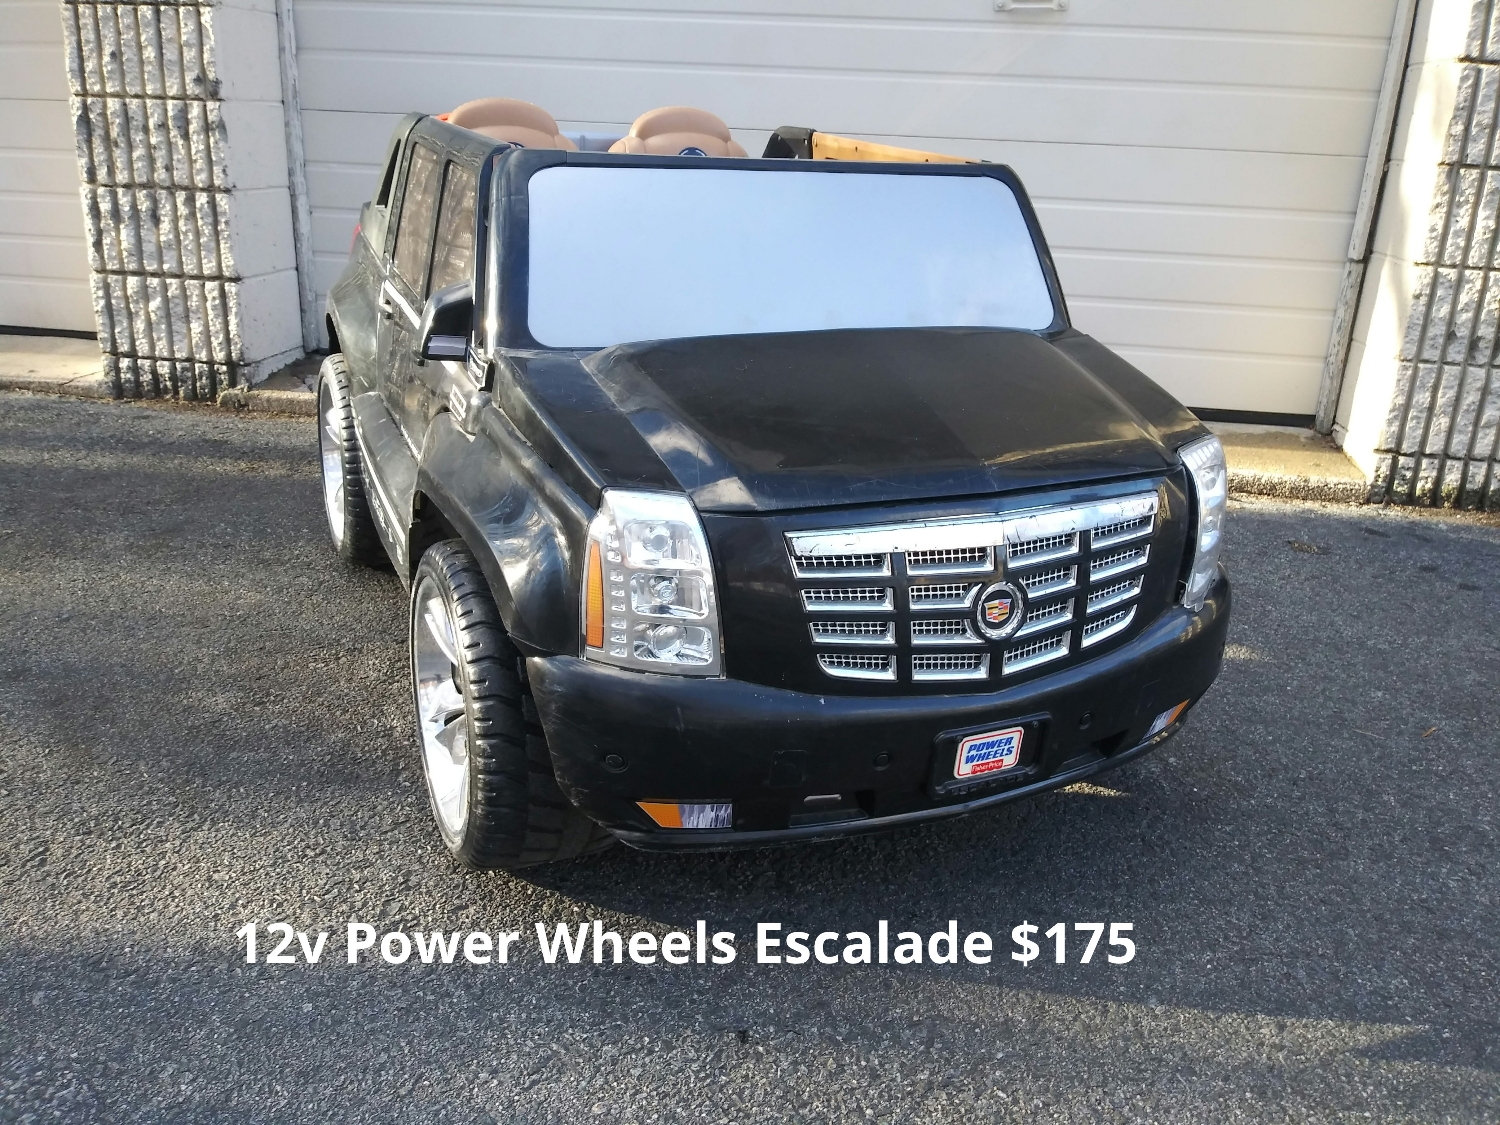 12v Power Wheels Escalade